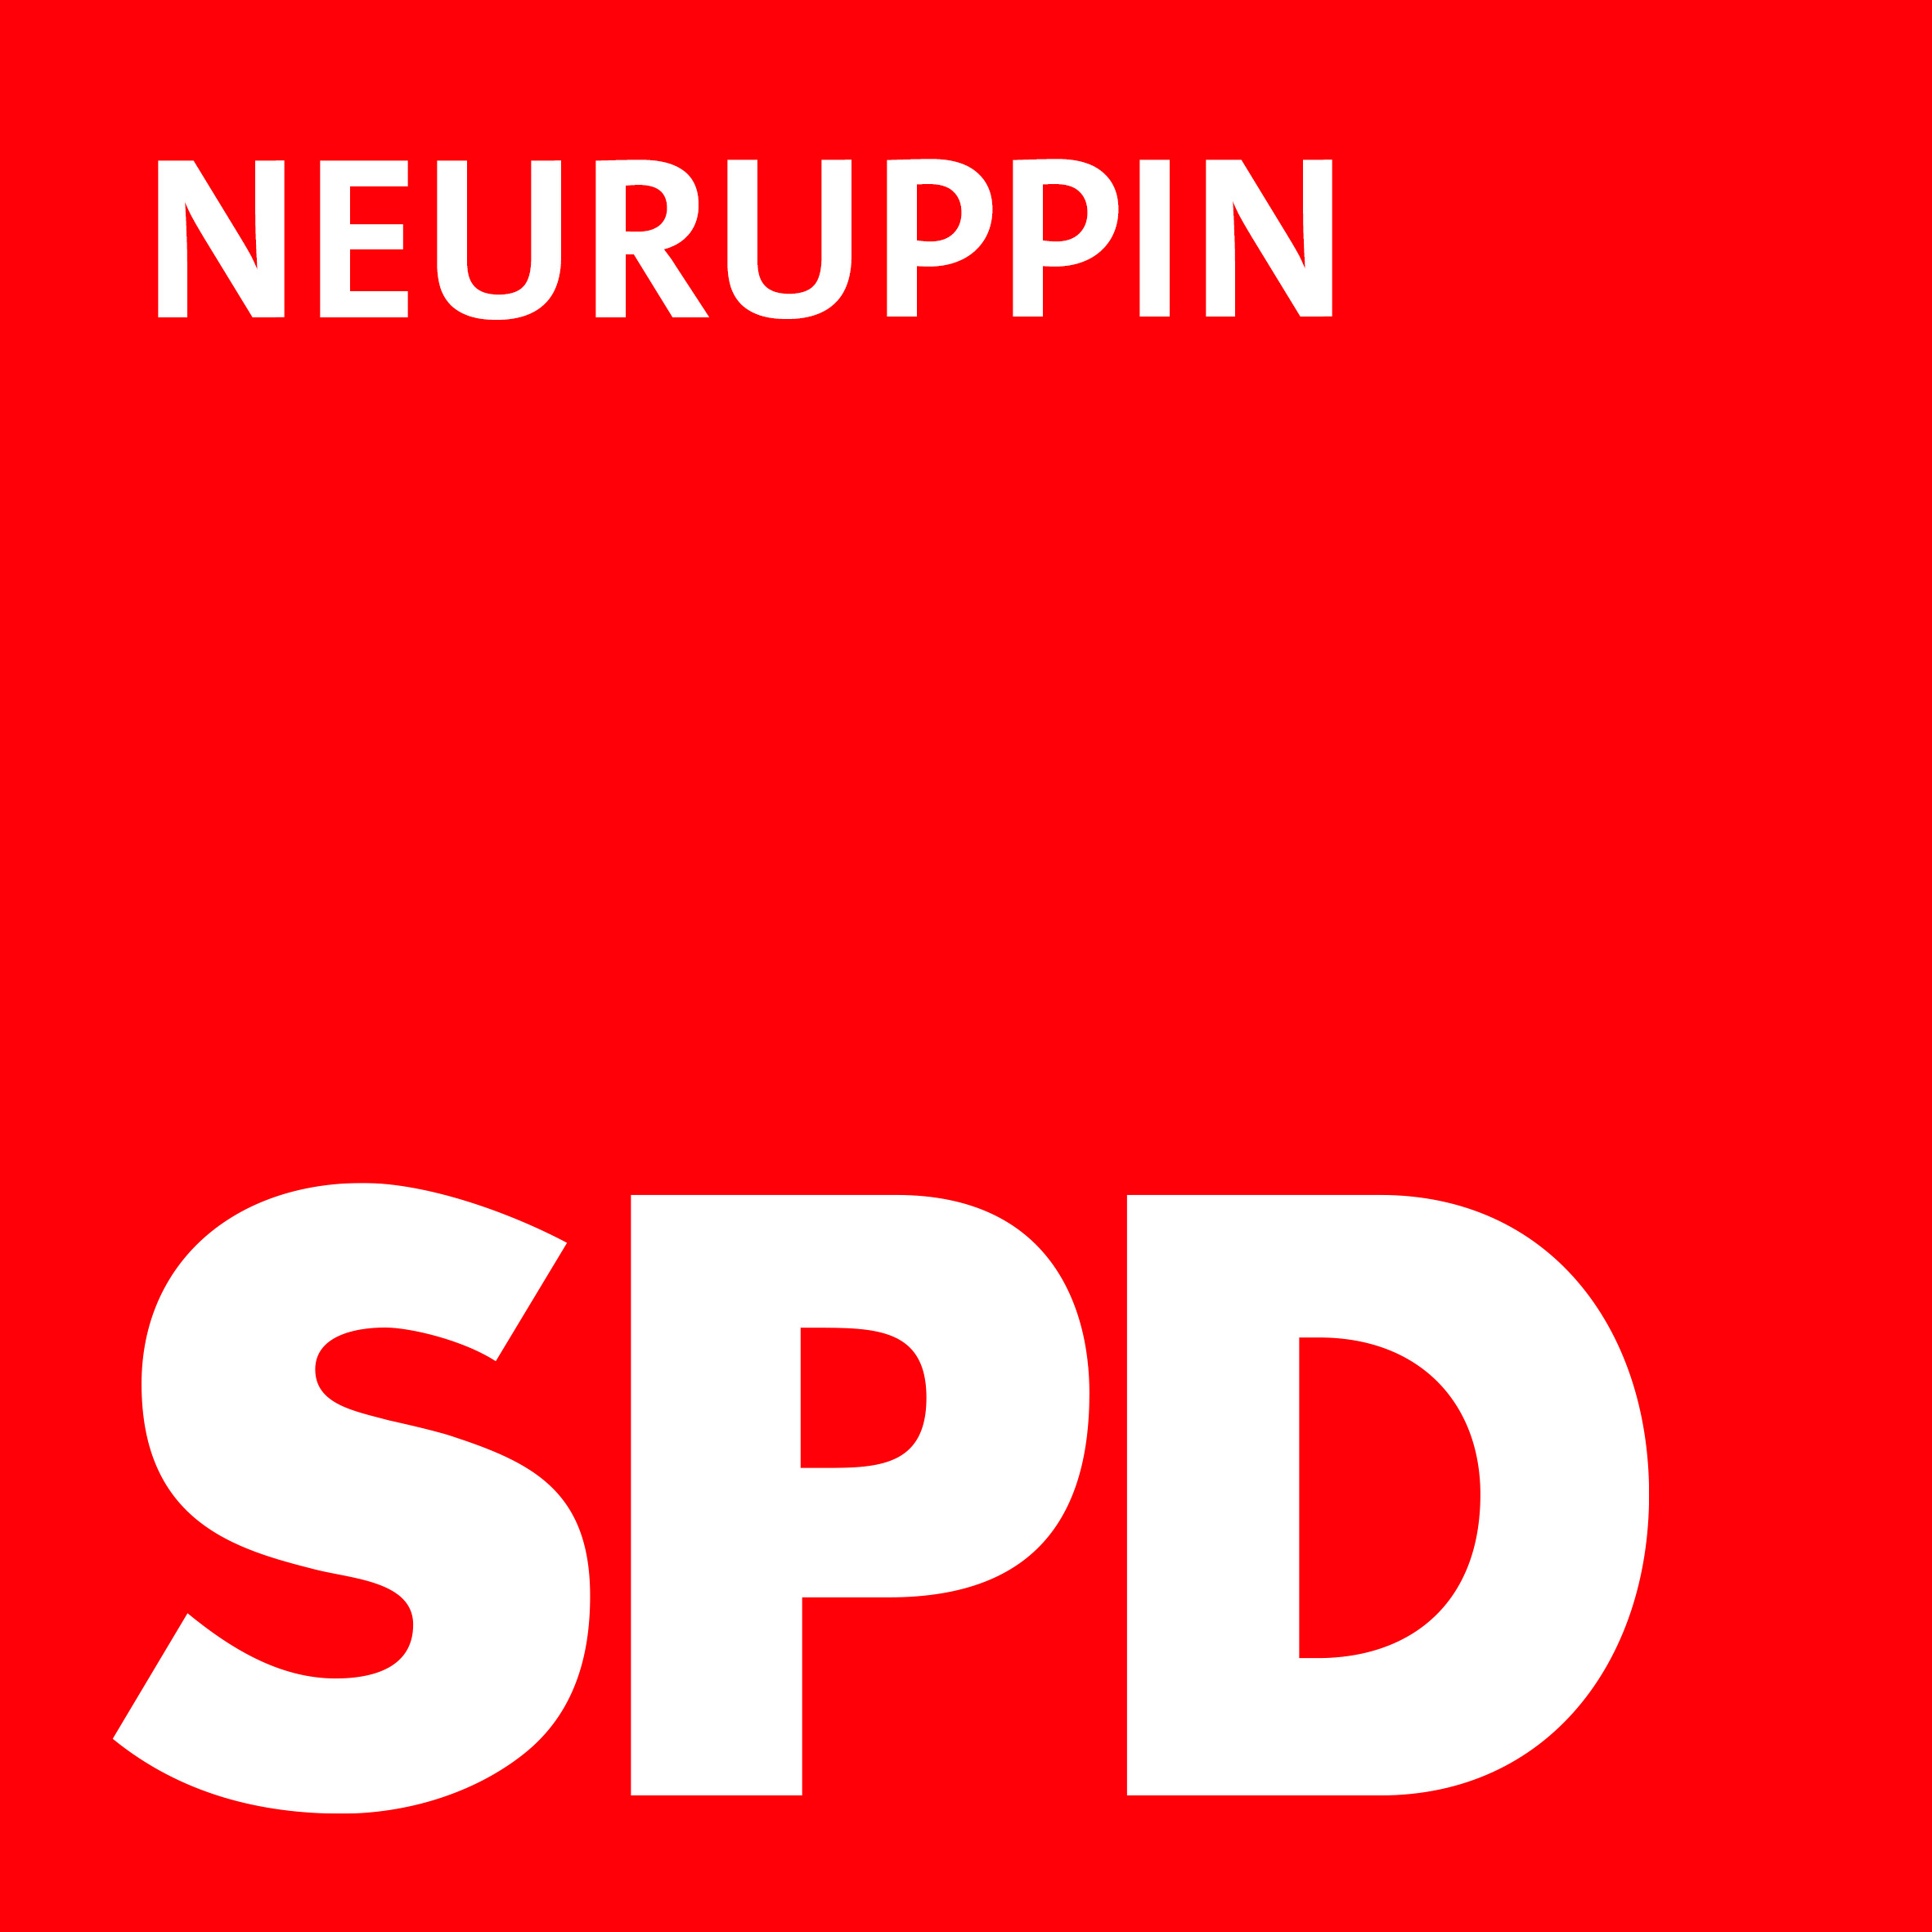 SPD Neuruppin